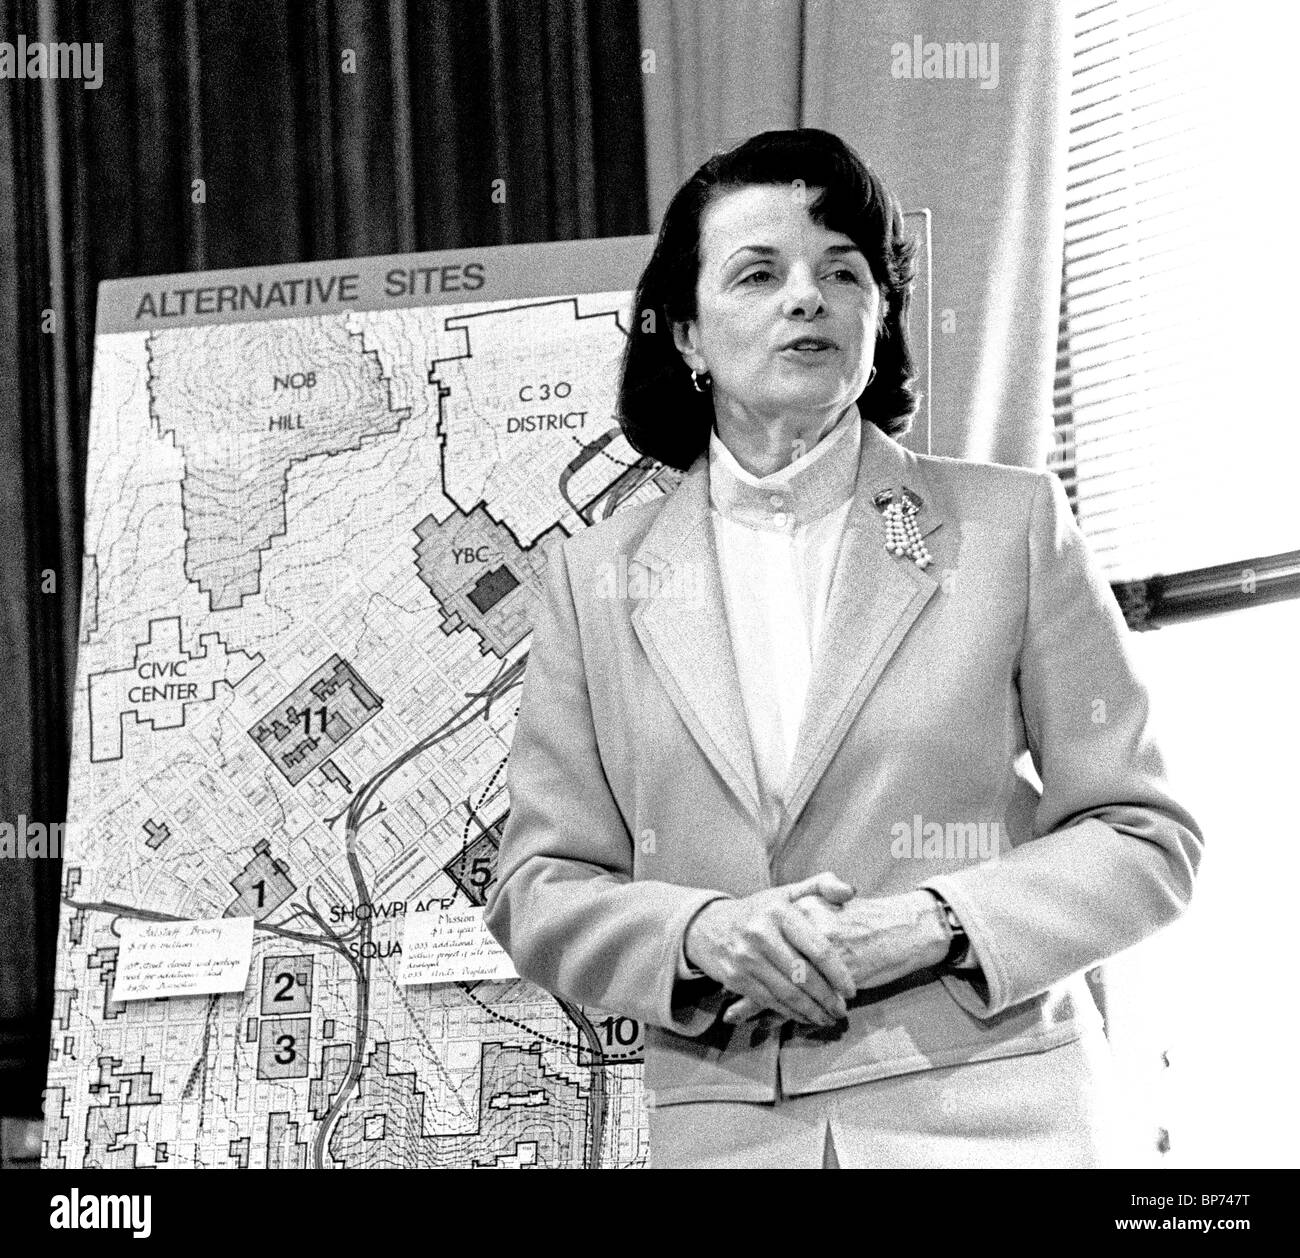 Mayor Dianne Feinstein talks about a new stadium in her office in City Hall, San Francisco California. - Stock Image